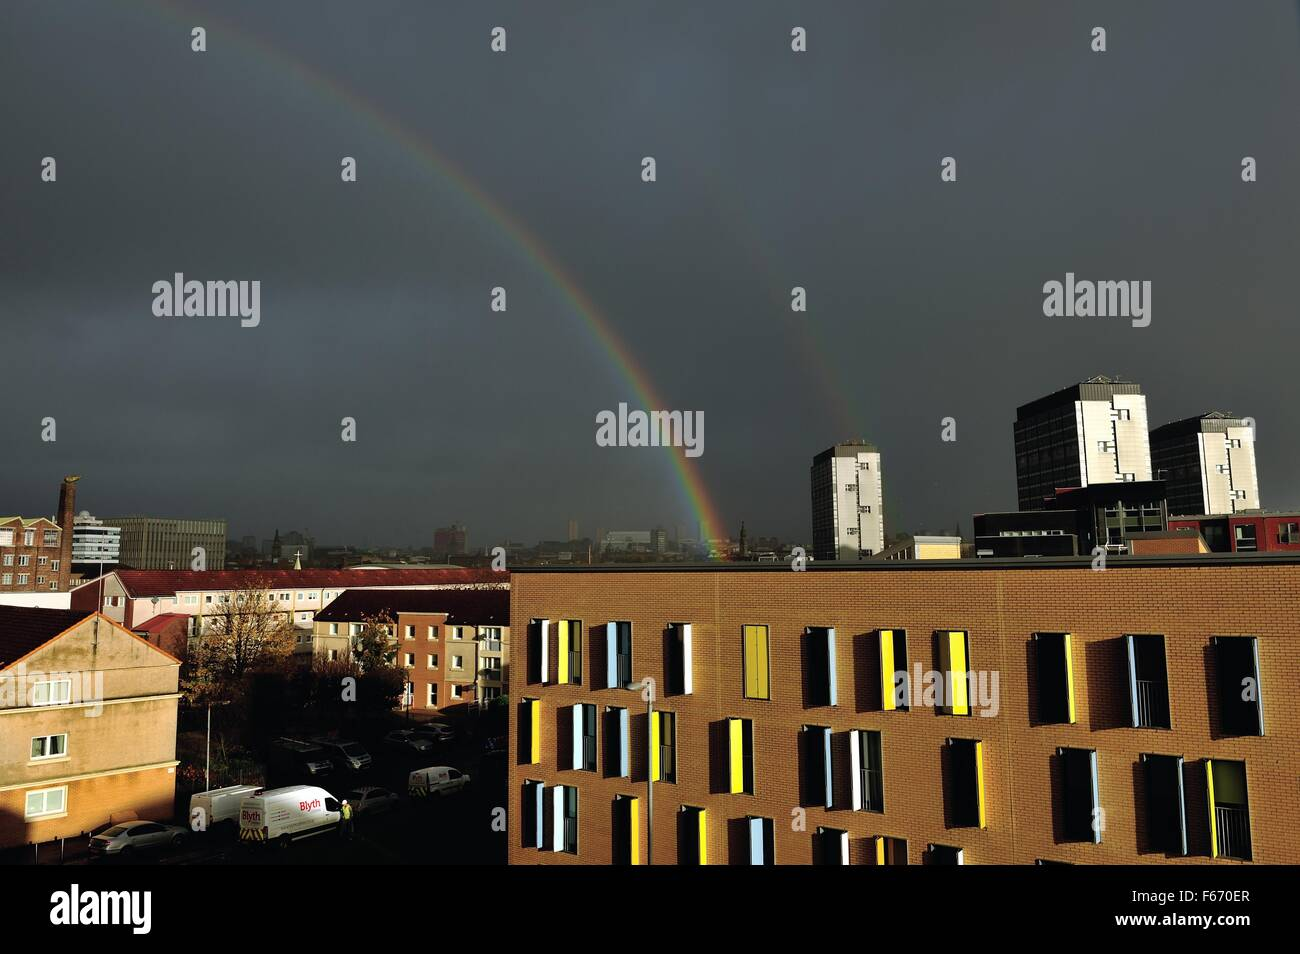 Glasgow, Scotland, UK. 13th Nov, 2015. Dark skies and a double rainbow over Glasgow after Storm Abigail passes through - Stock Image